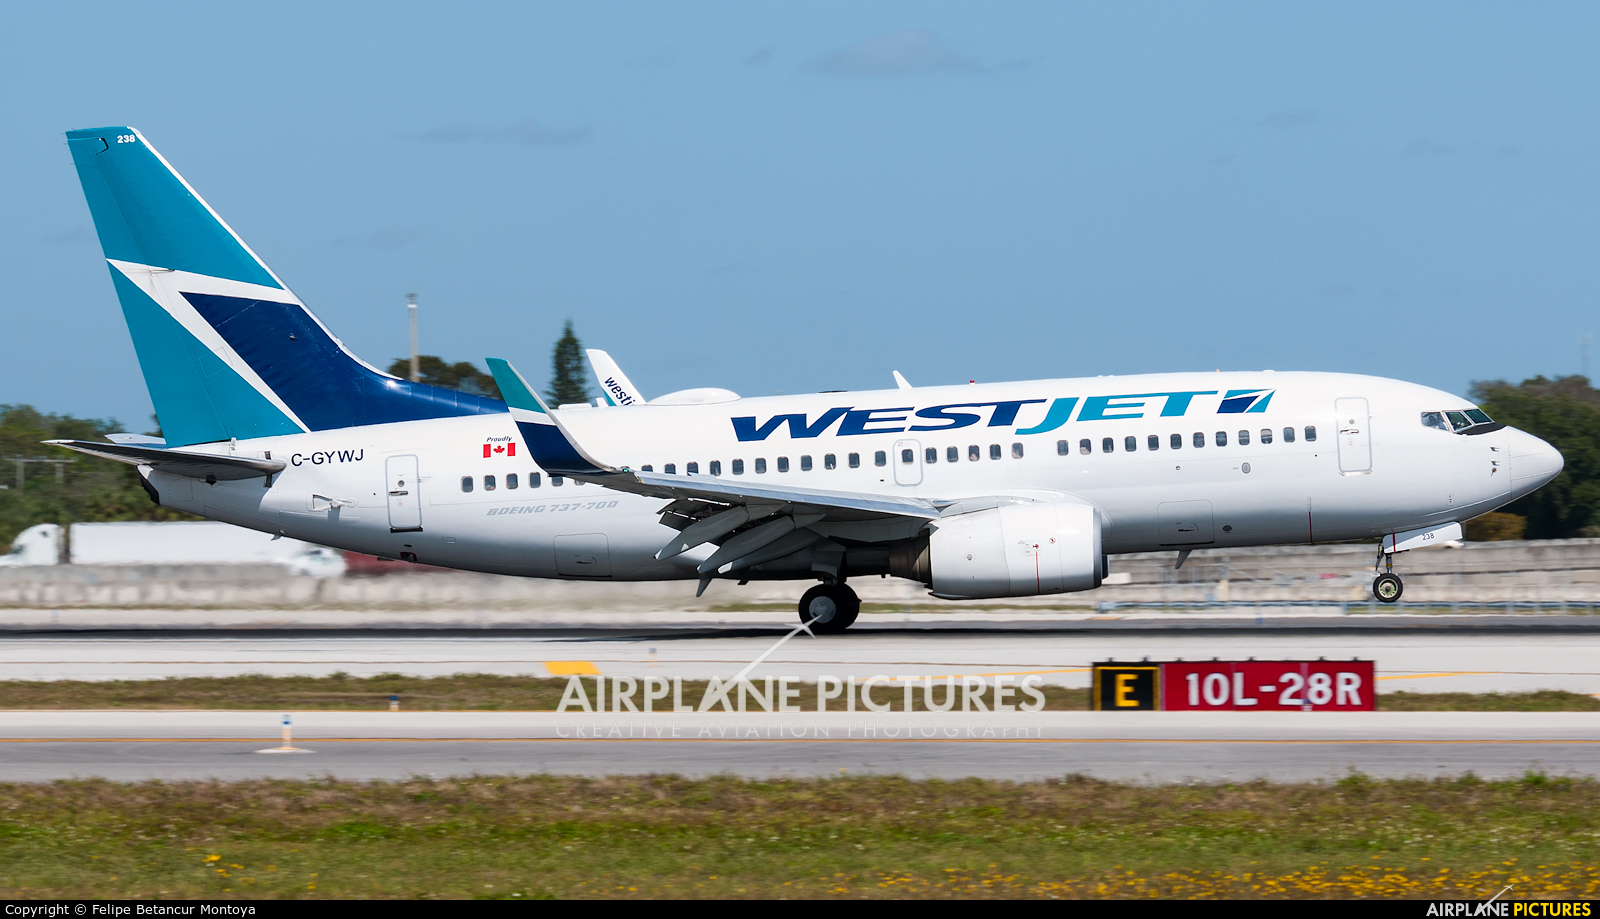 WestJet Airlines C-GYWJ aircraft at Fort Lauderdale - Hollywood Intl